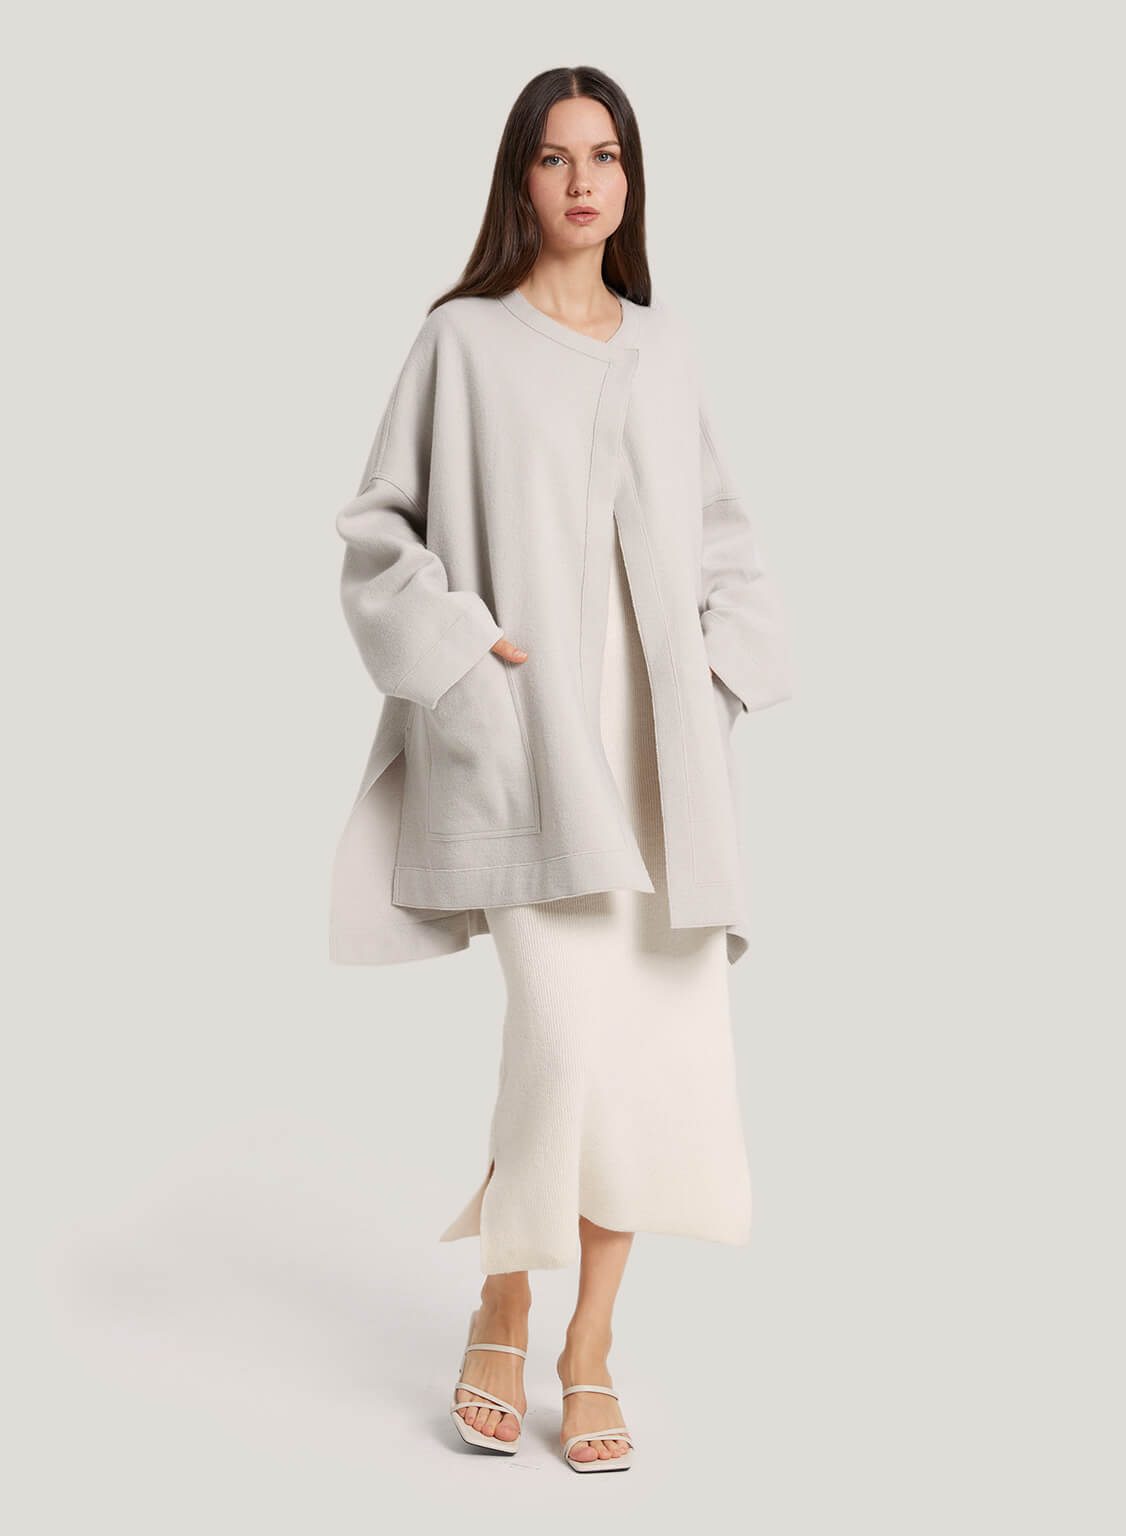 Wrap yourself in the feminine charms of this wool coat. This coat features a clean-lined silhouette